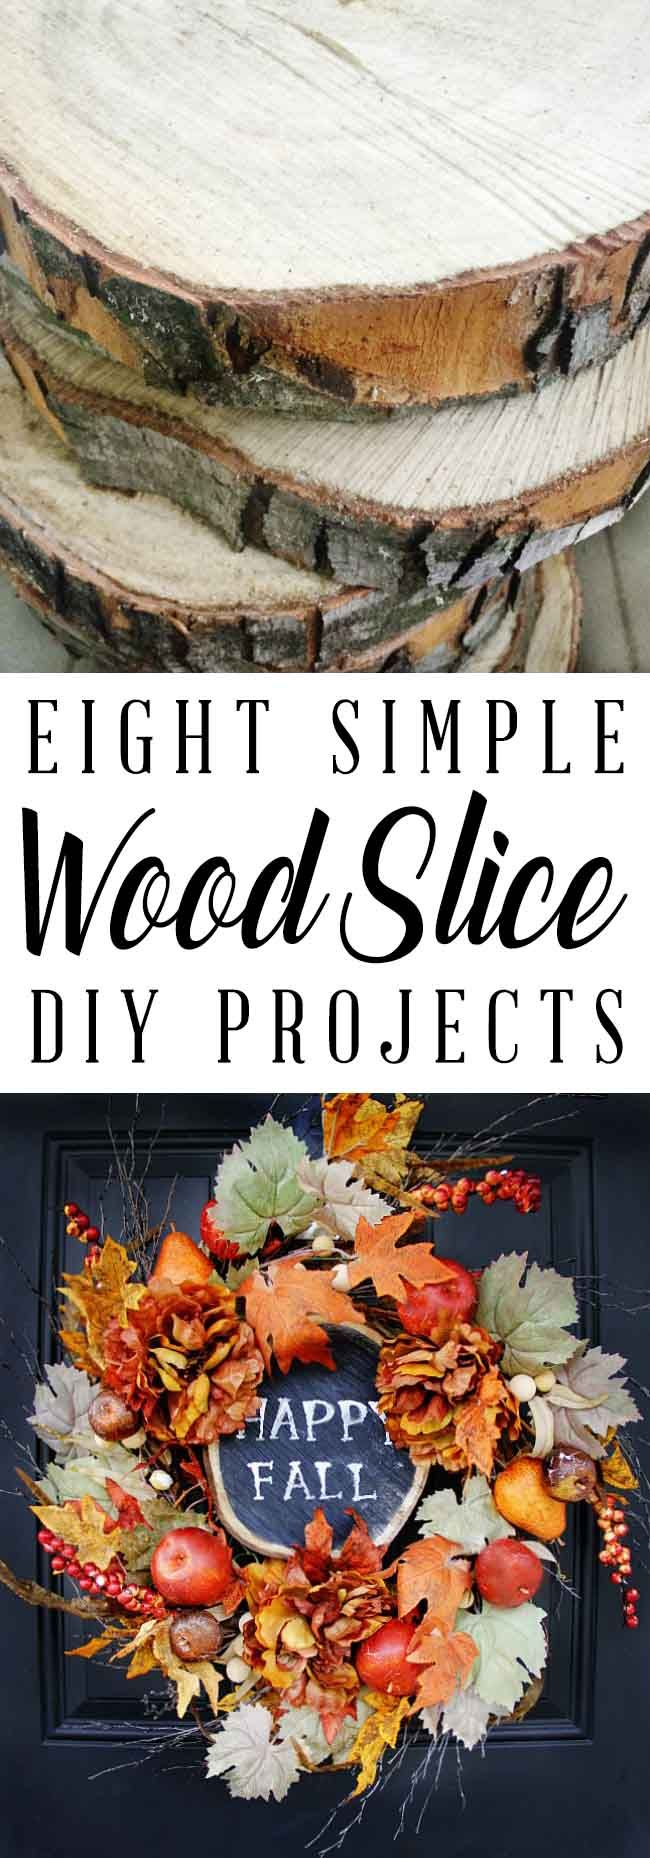 Eight Simple Wood Slice Projects